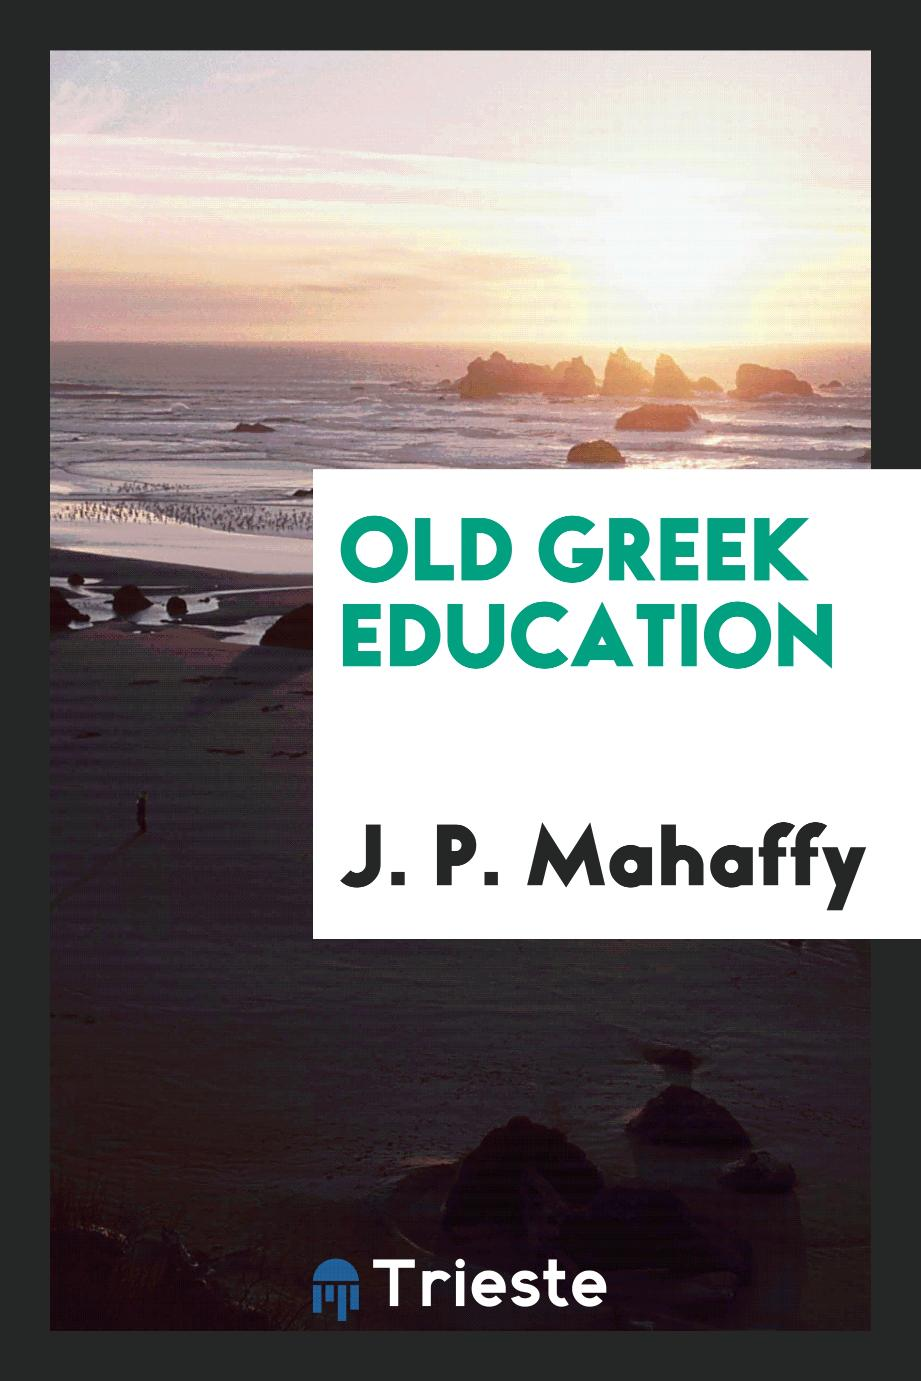 Old Greek education